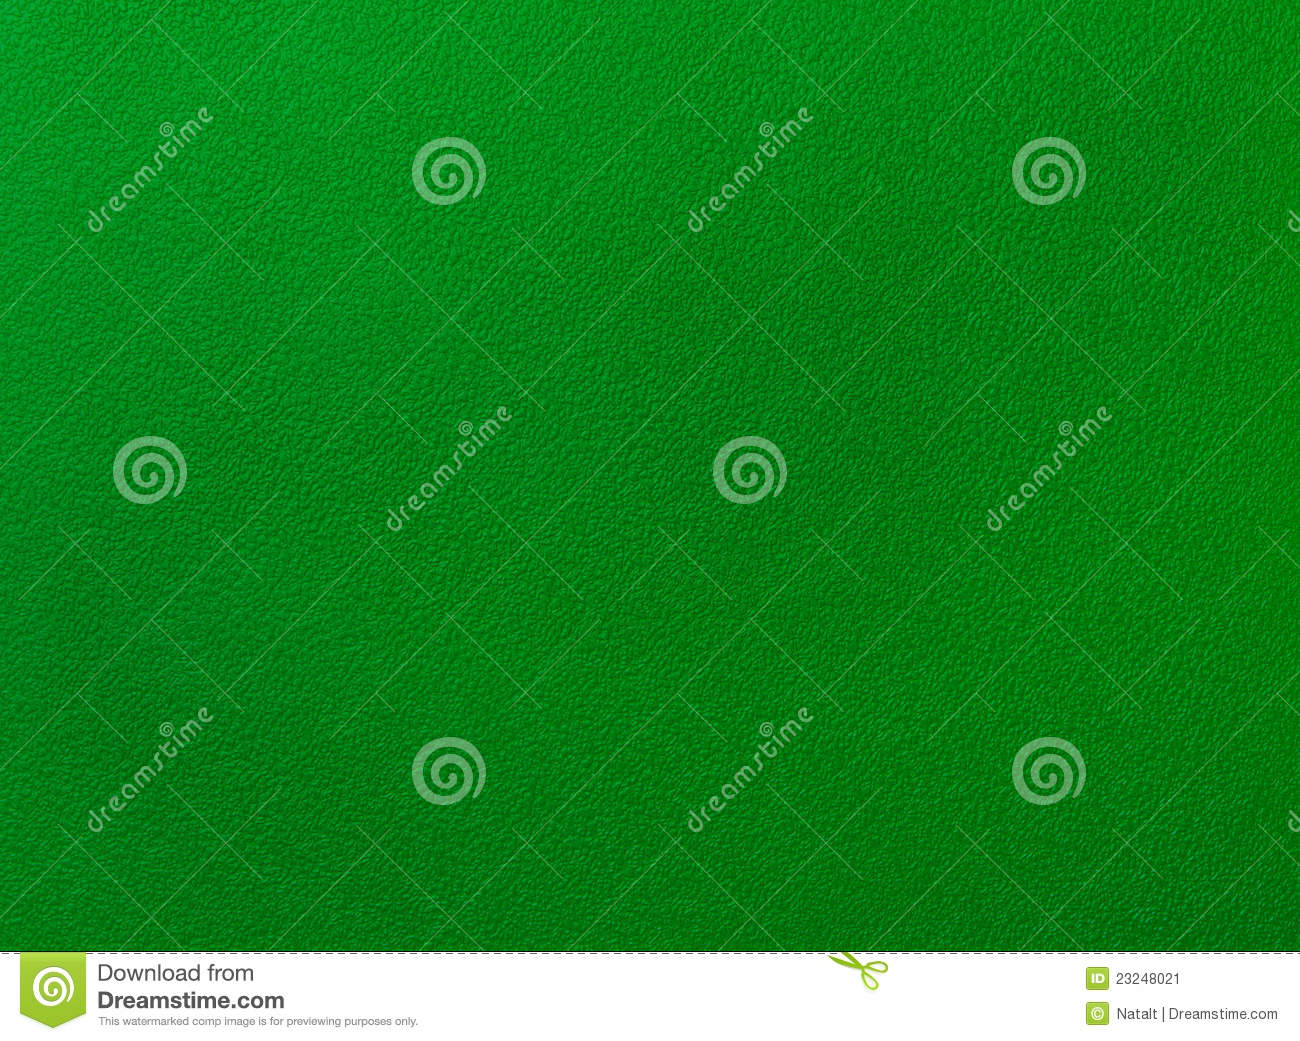 Poker table felt background stock image image 23248021